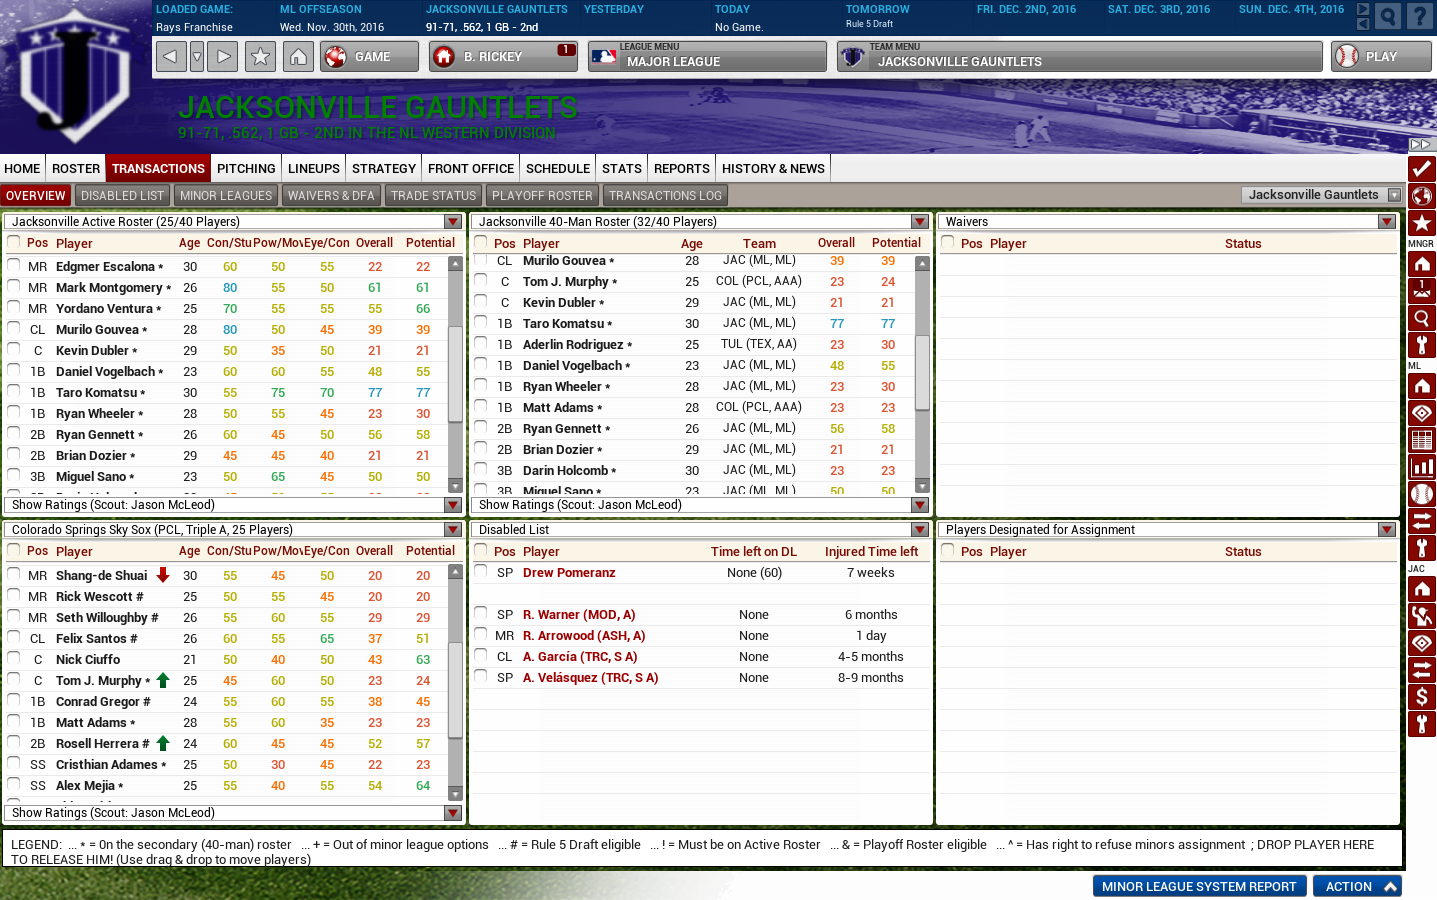 OOTP transactions